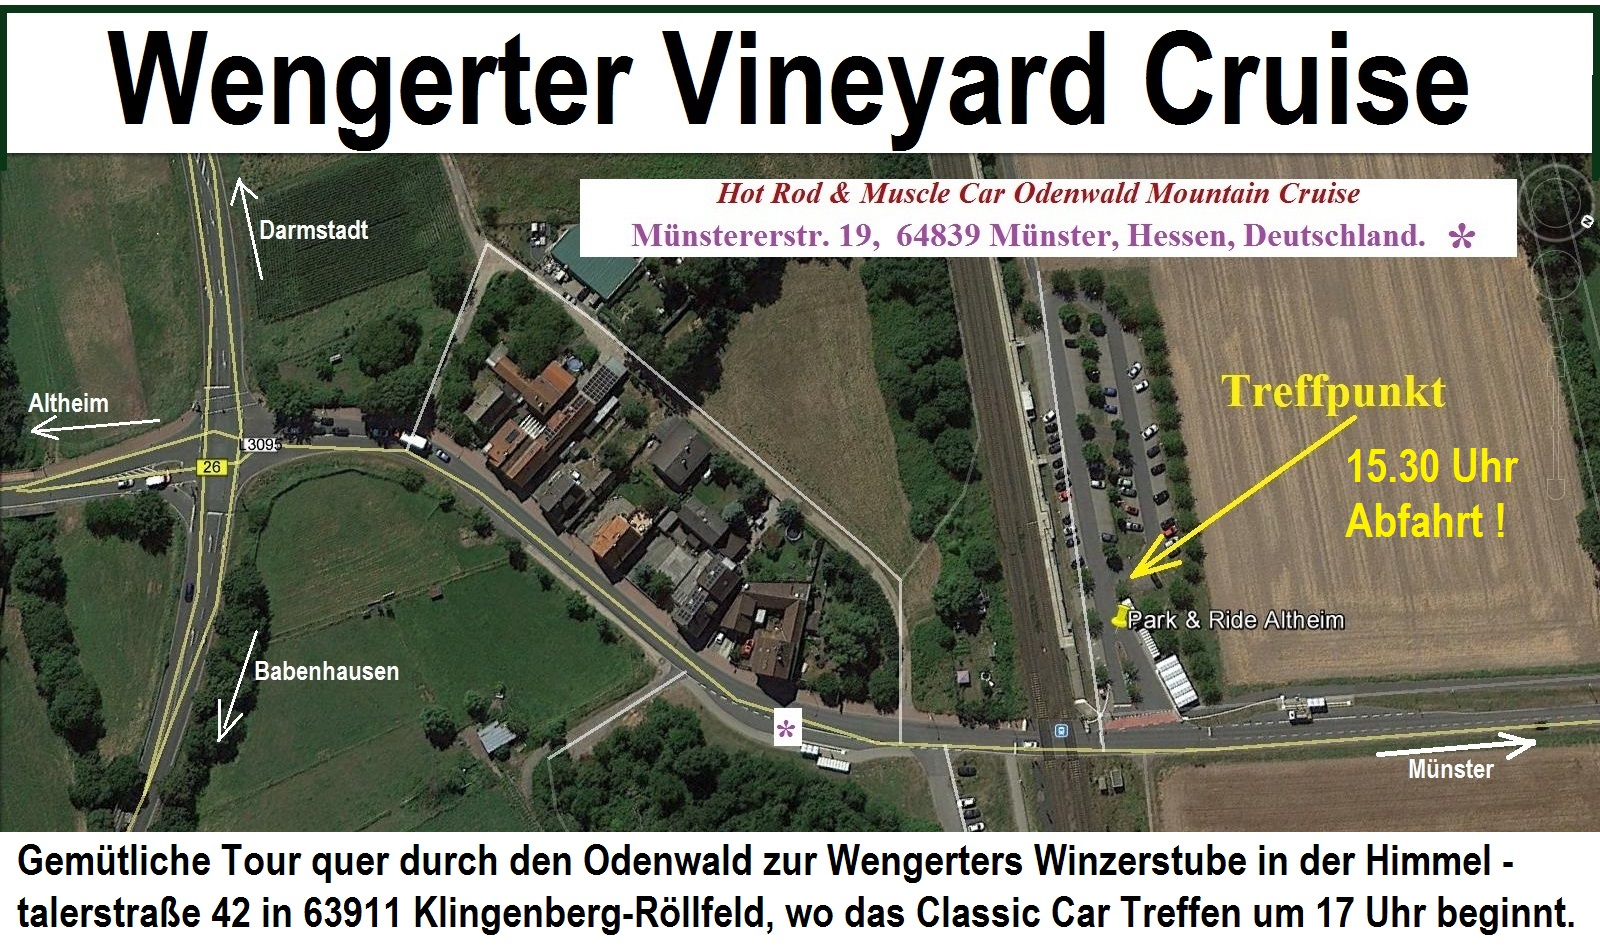 Wengerter Vineyard Cruise